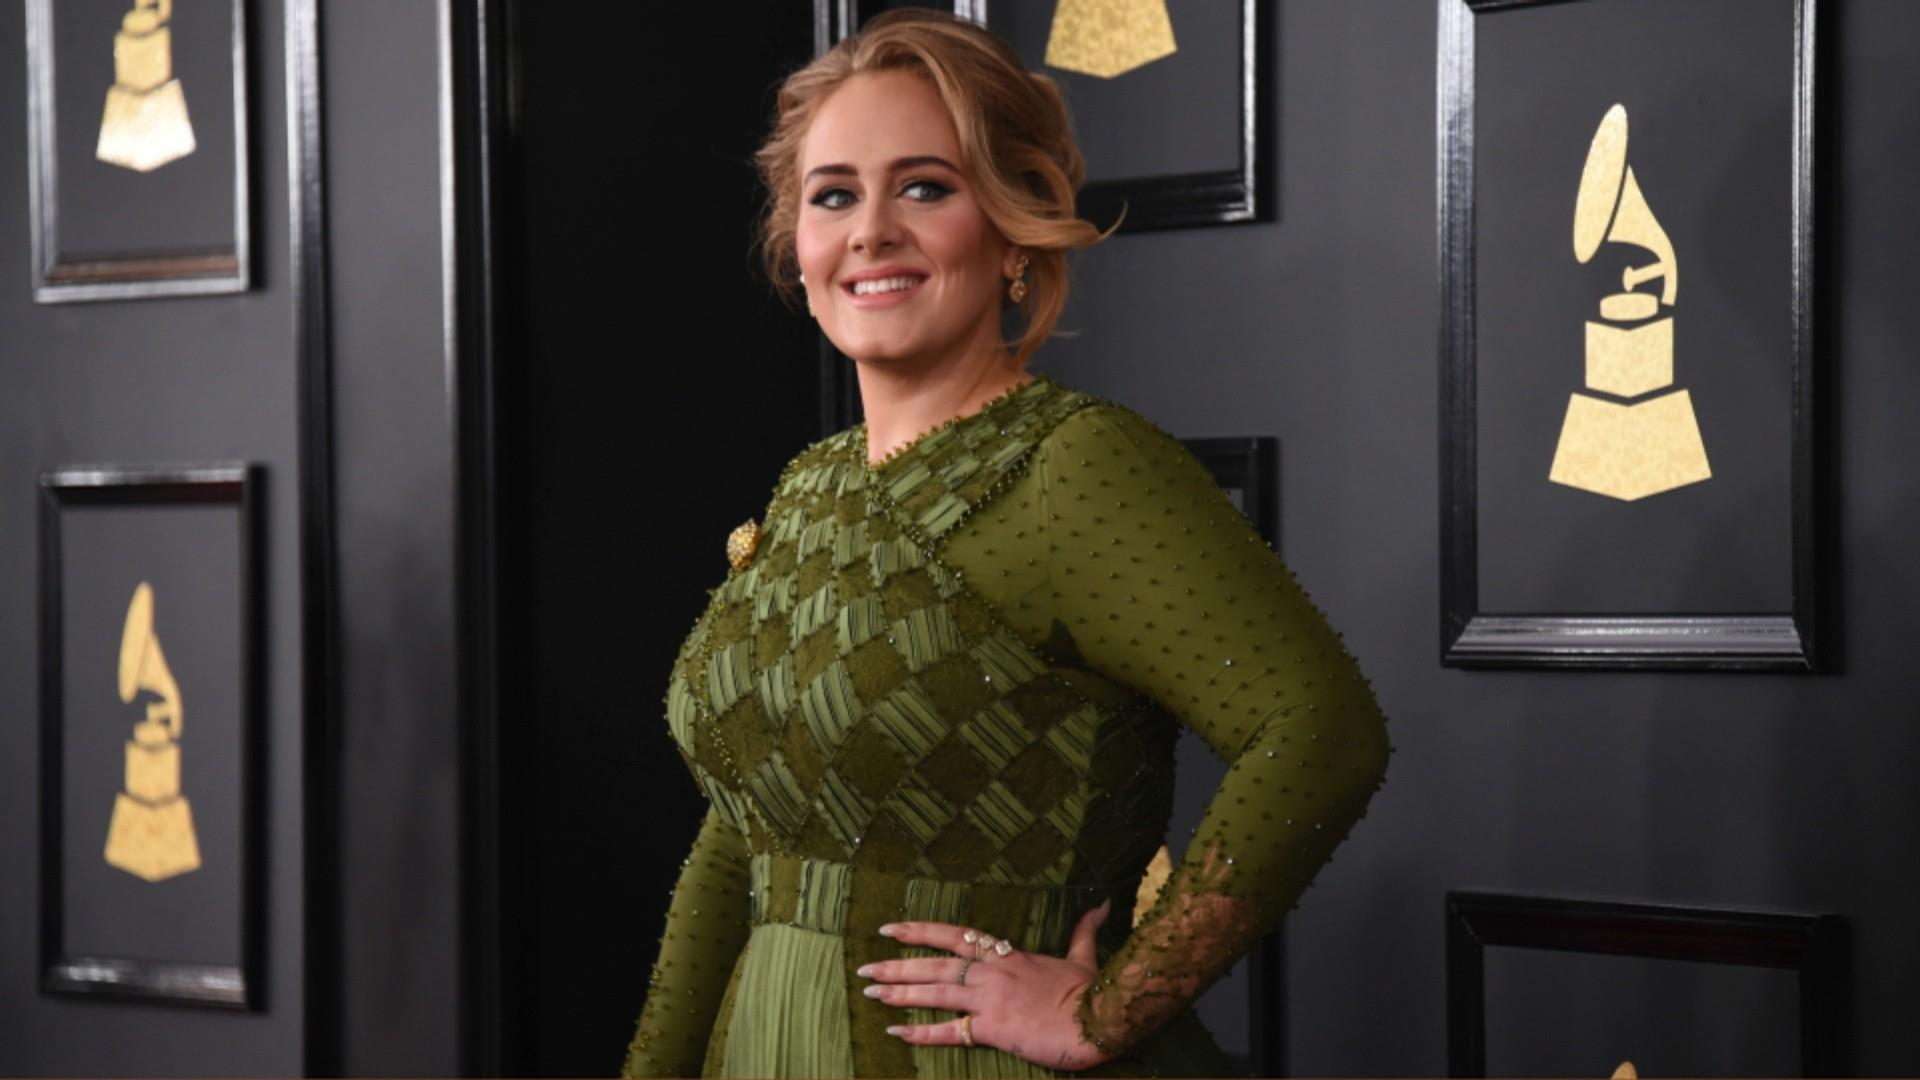 Rumor has it Adele could be ready to release new music